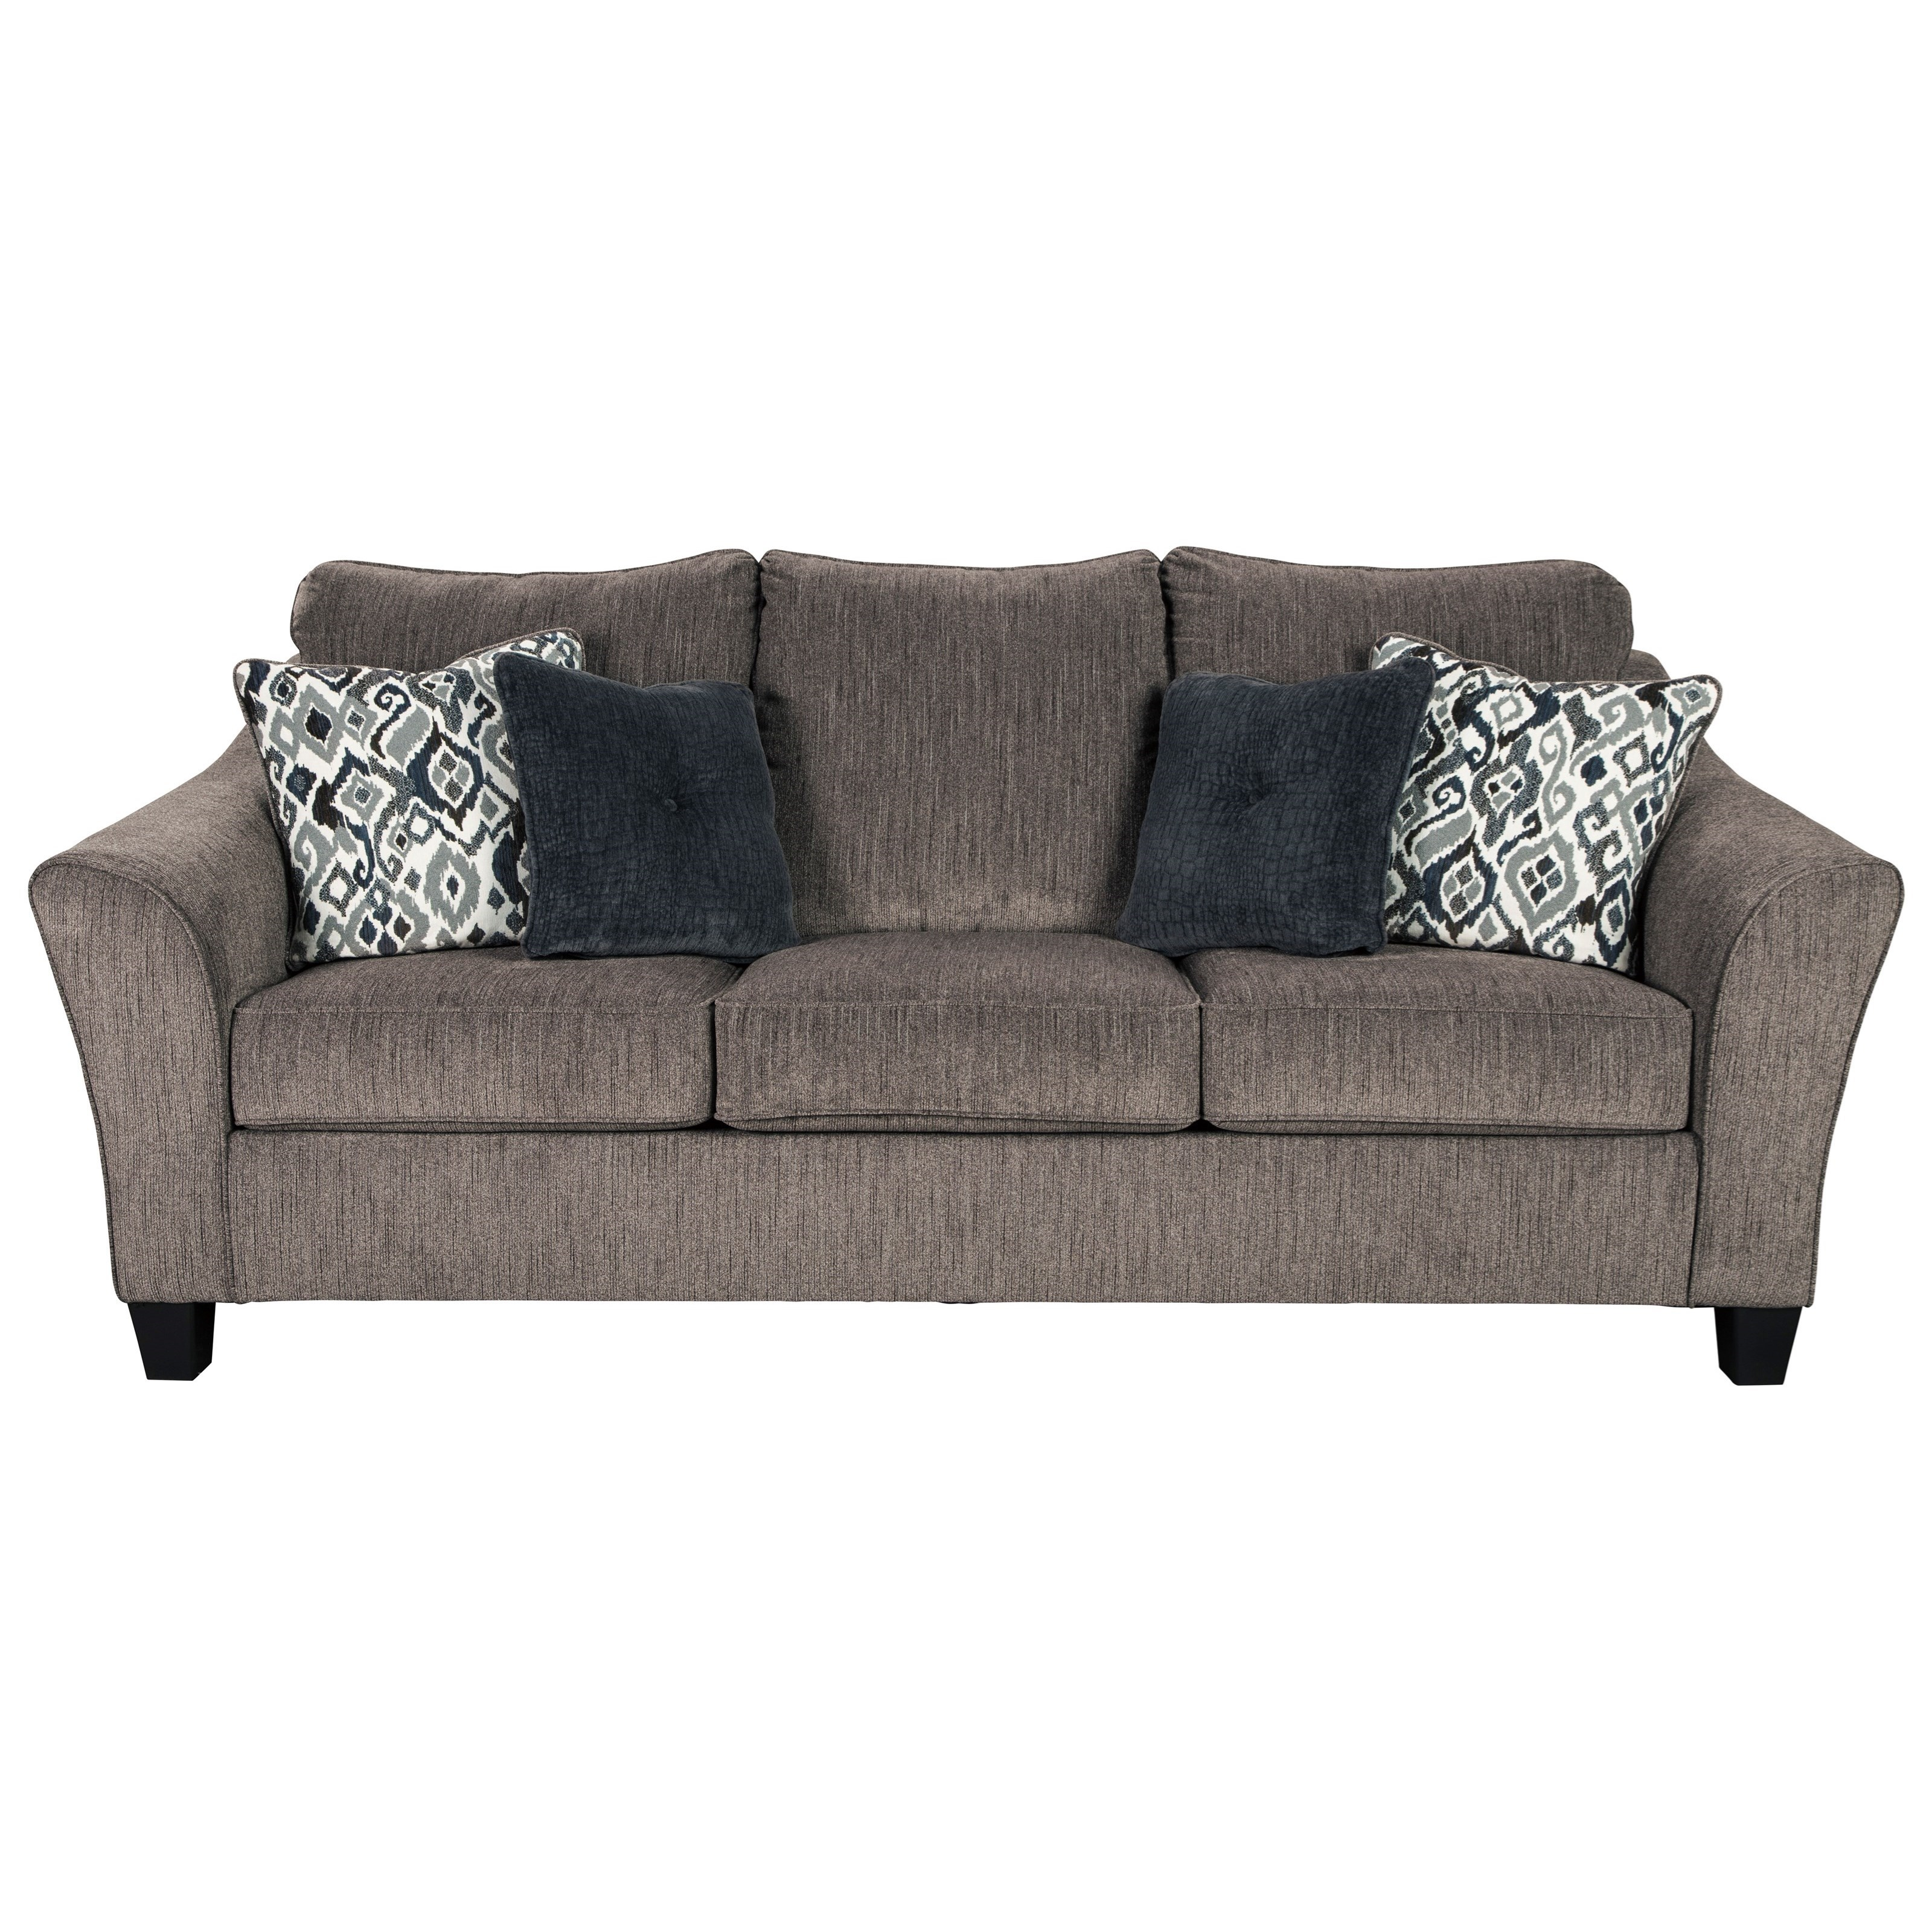 Nemoli Sofa by Signature Design by Ashley at Miller Home